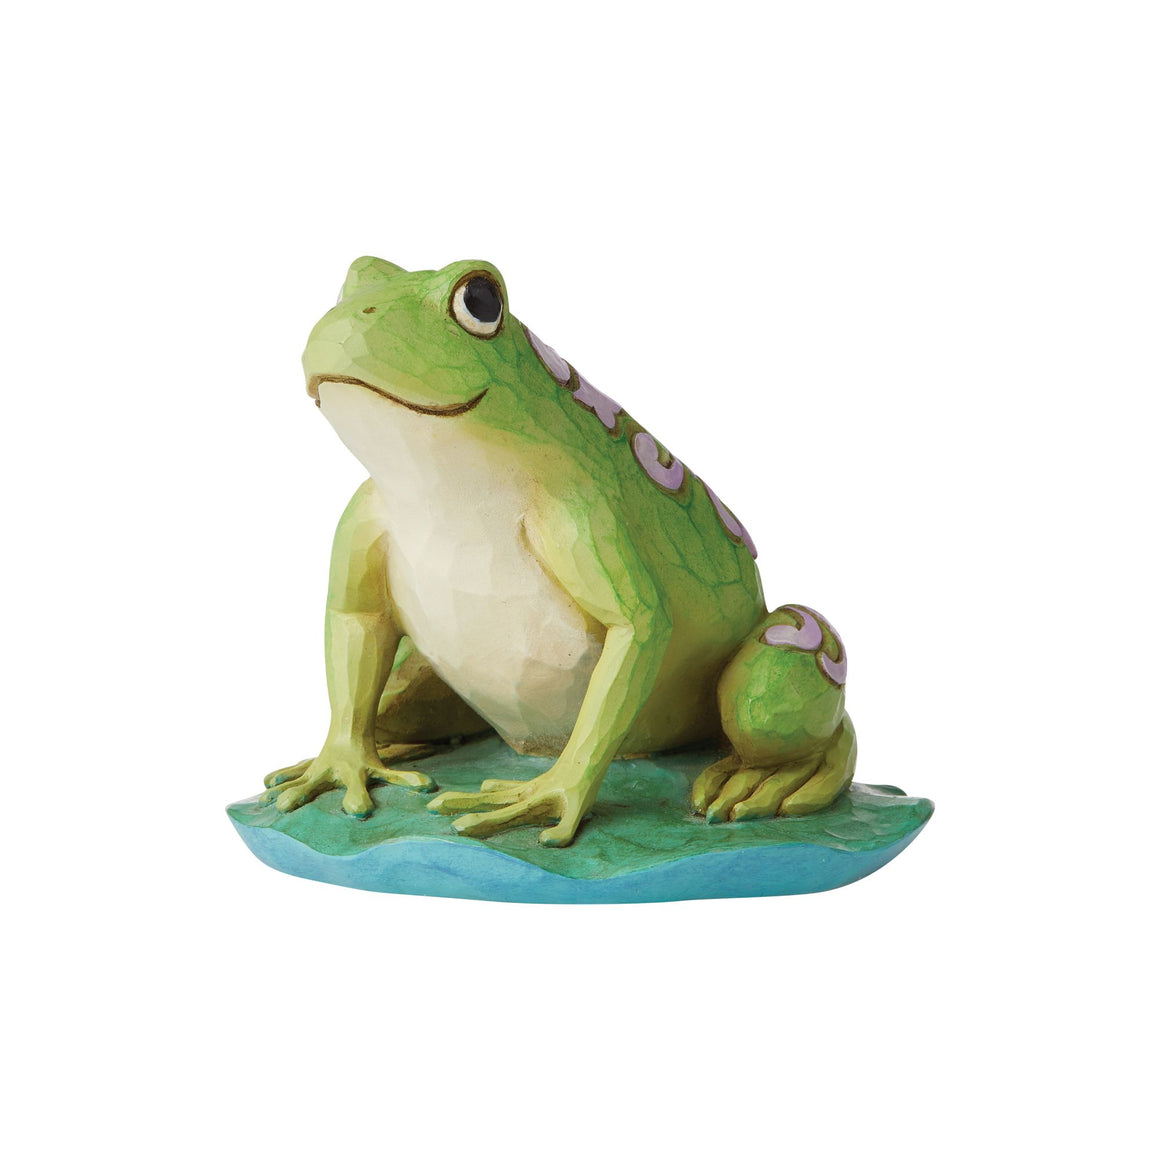 Frog Mini Figurine - Heartwood Creek by Jim Shore